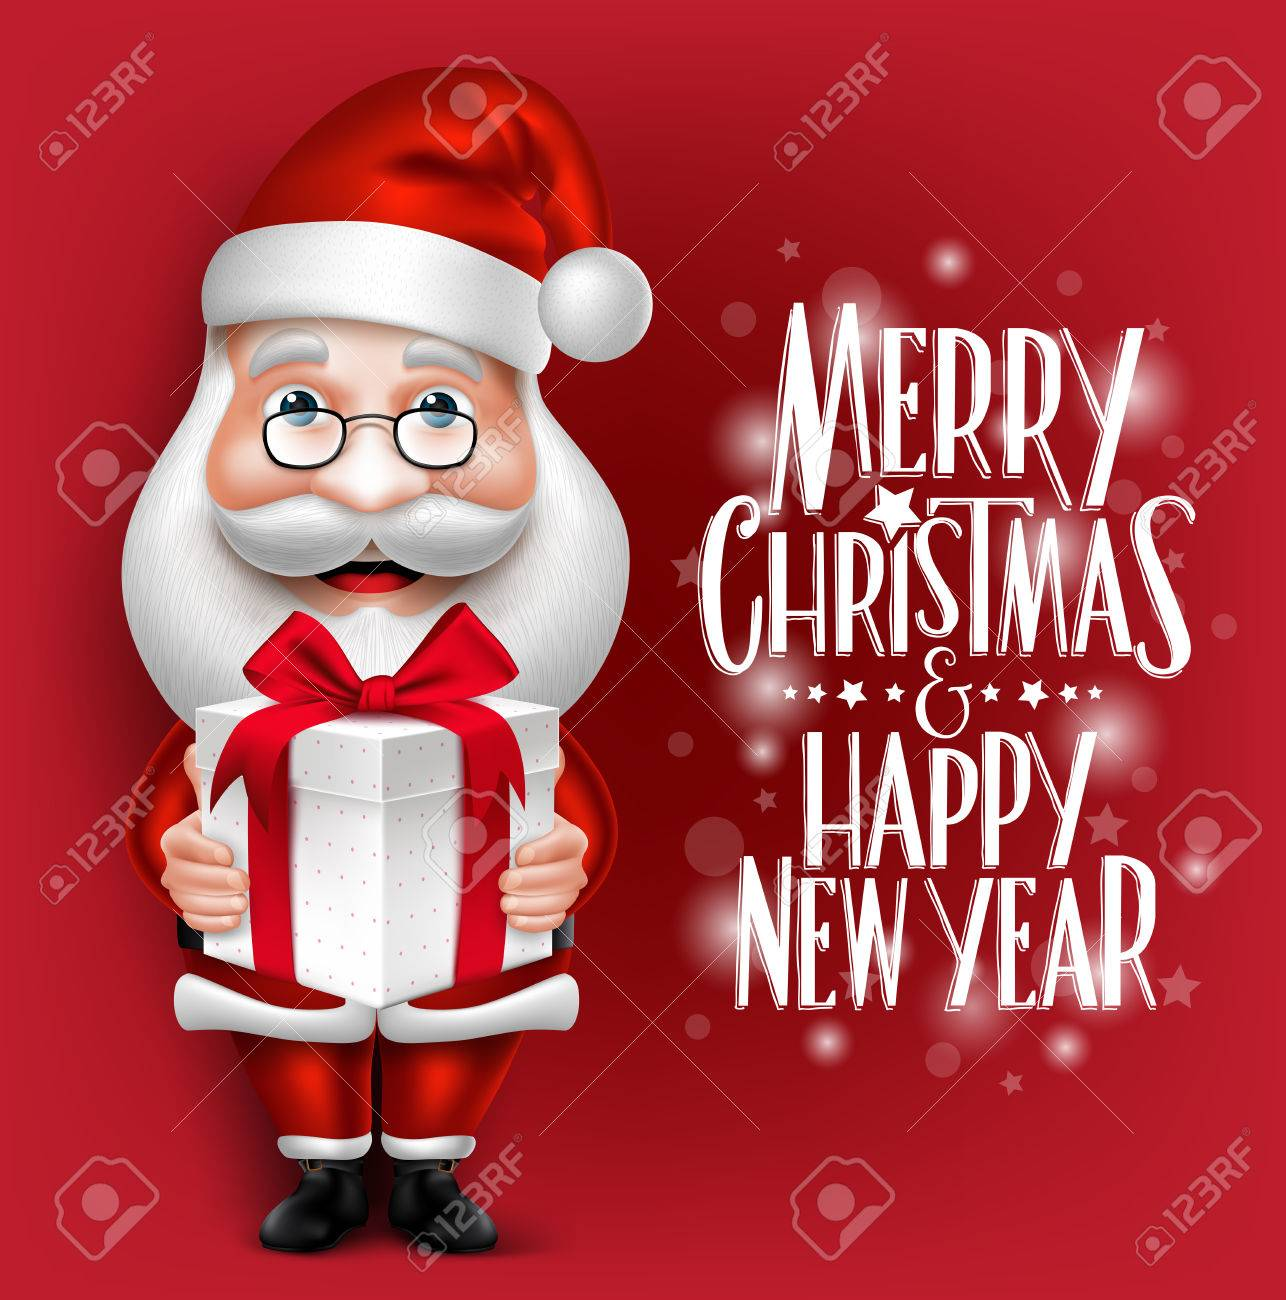 3D Realistic Santa Claus Cartoon Character Holding Christmas Gift in a Red Background with Title. Detailed Vector Illustration - 45509073